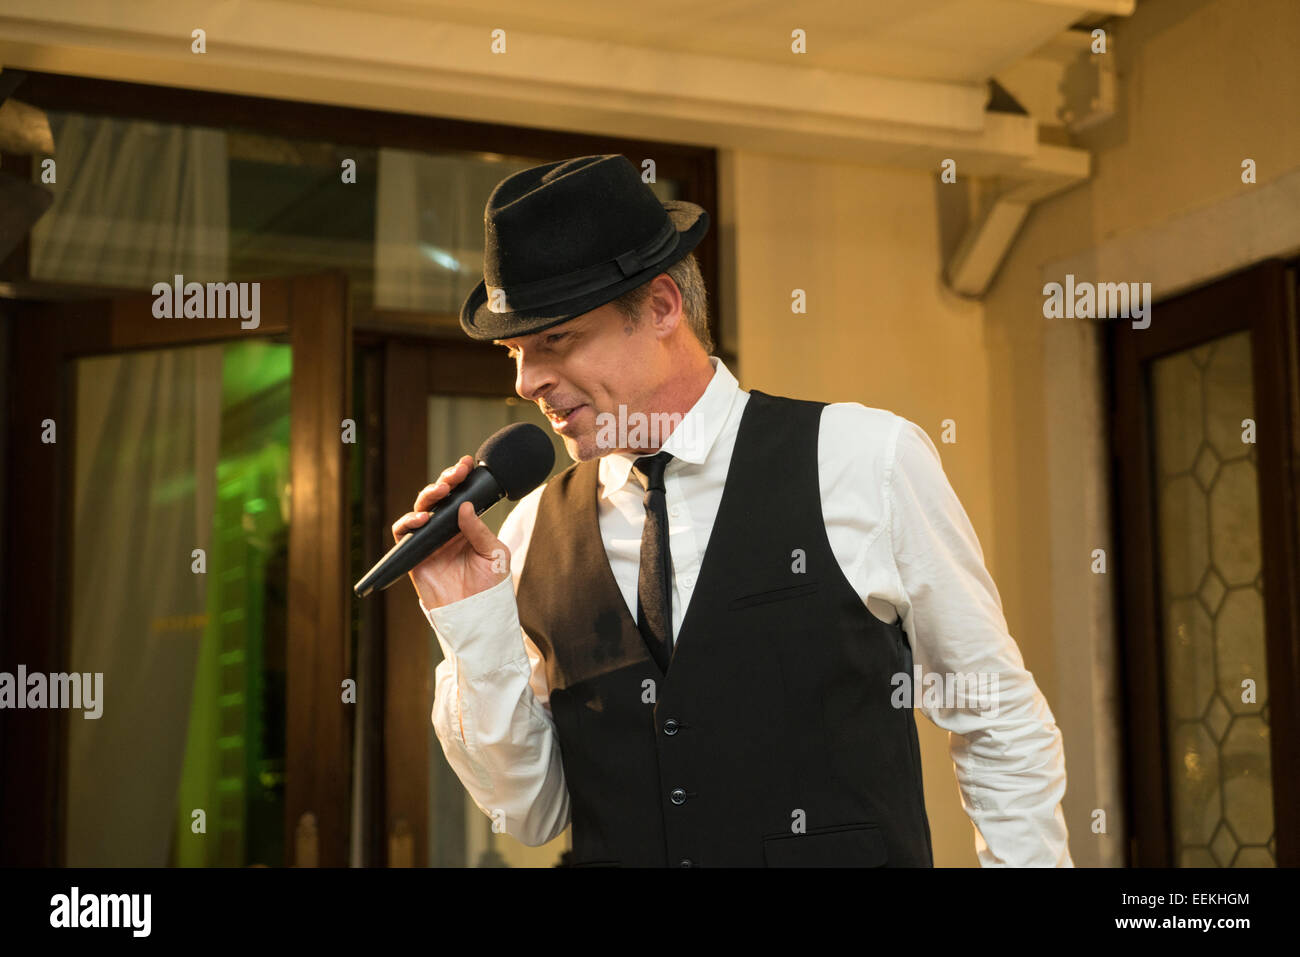 Vocalist at New Year's Eve Party (Capodanno), Europa and Regina Hotel - Stock Image